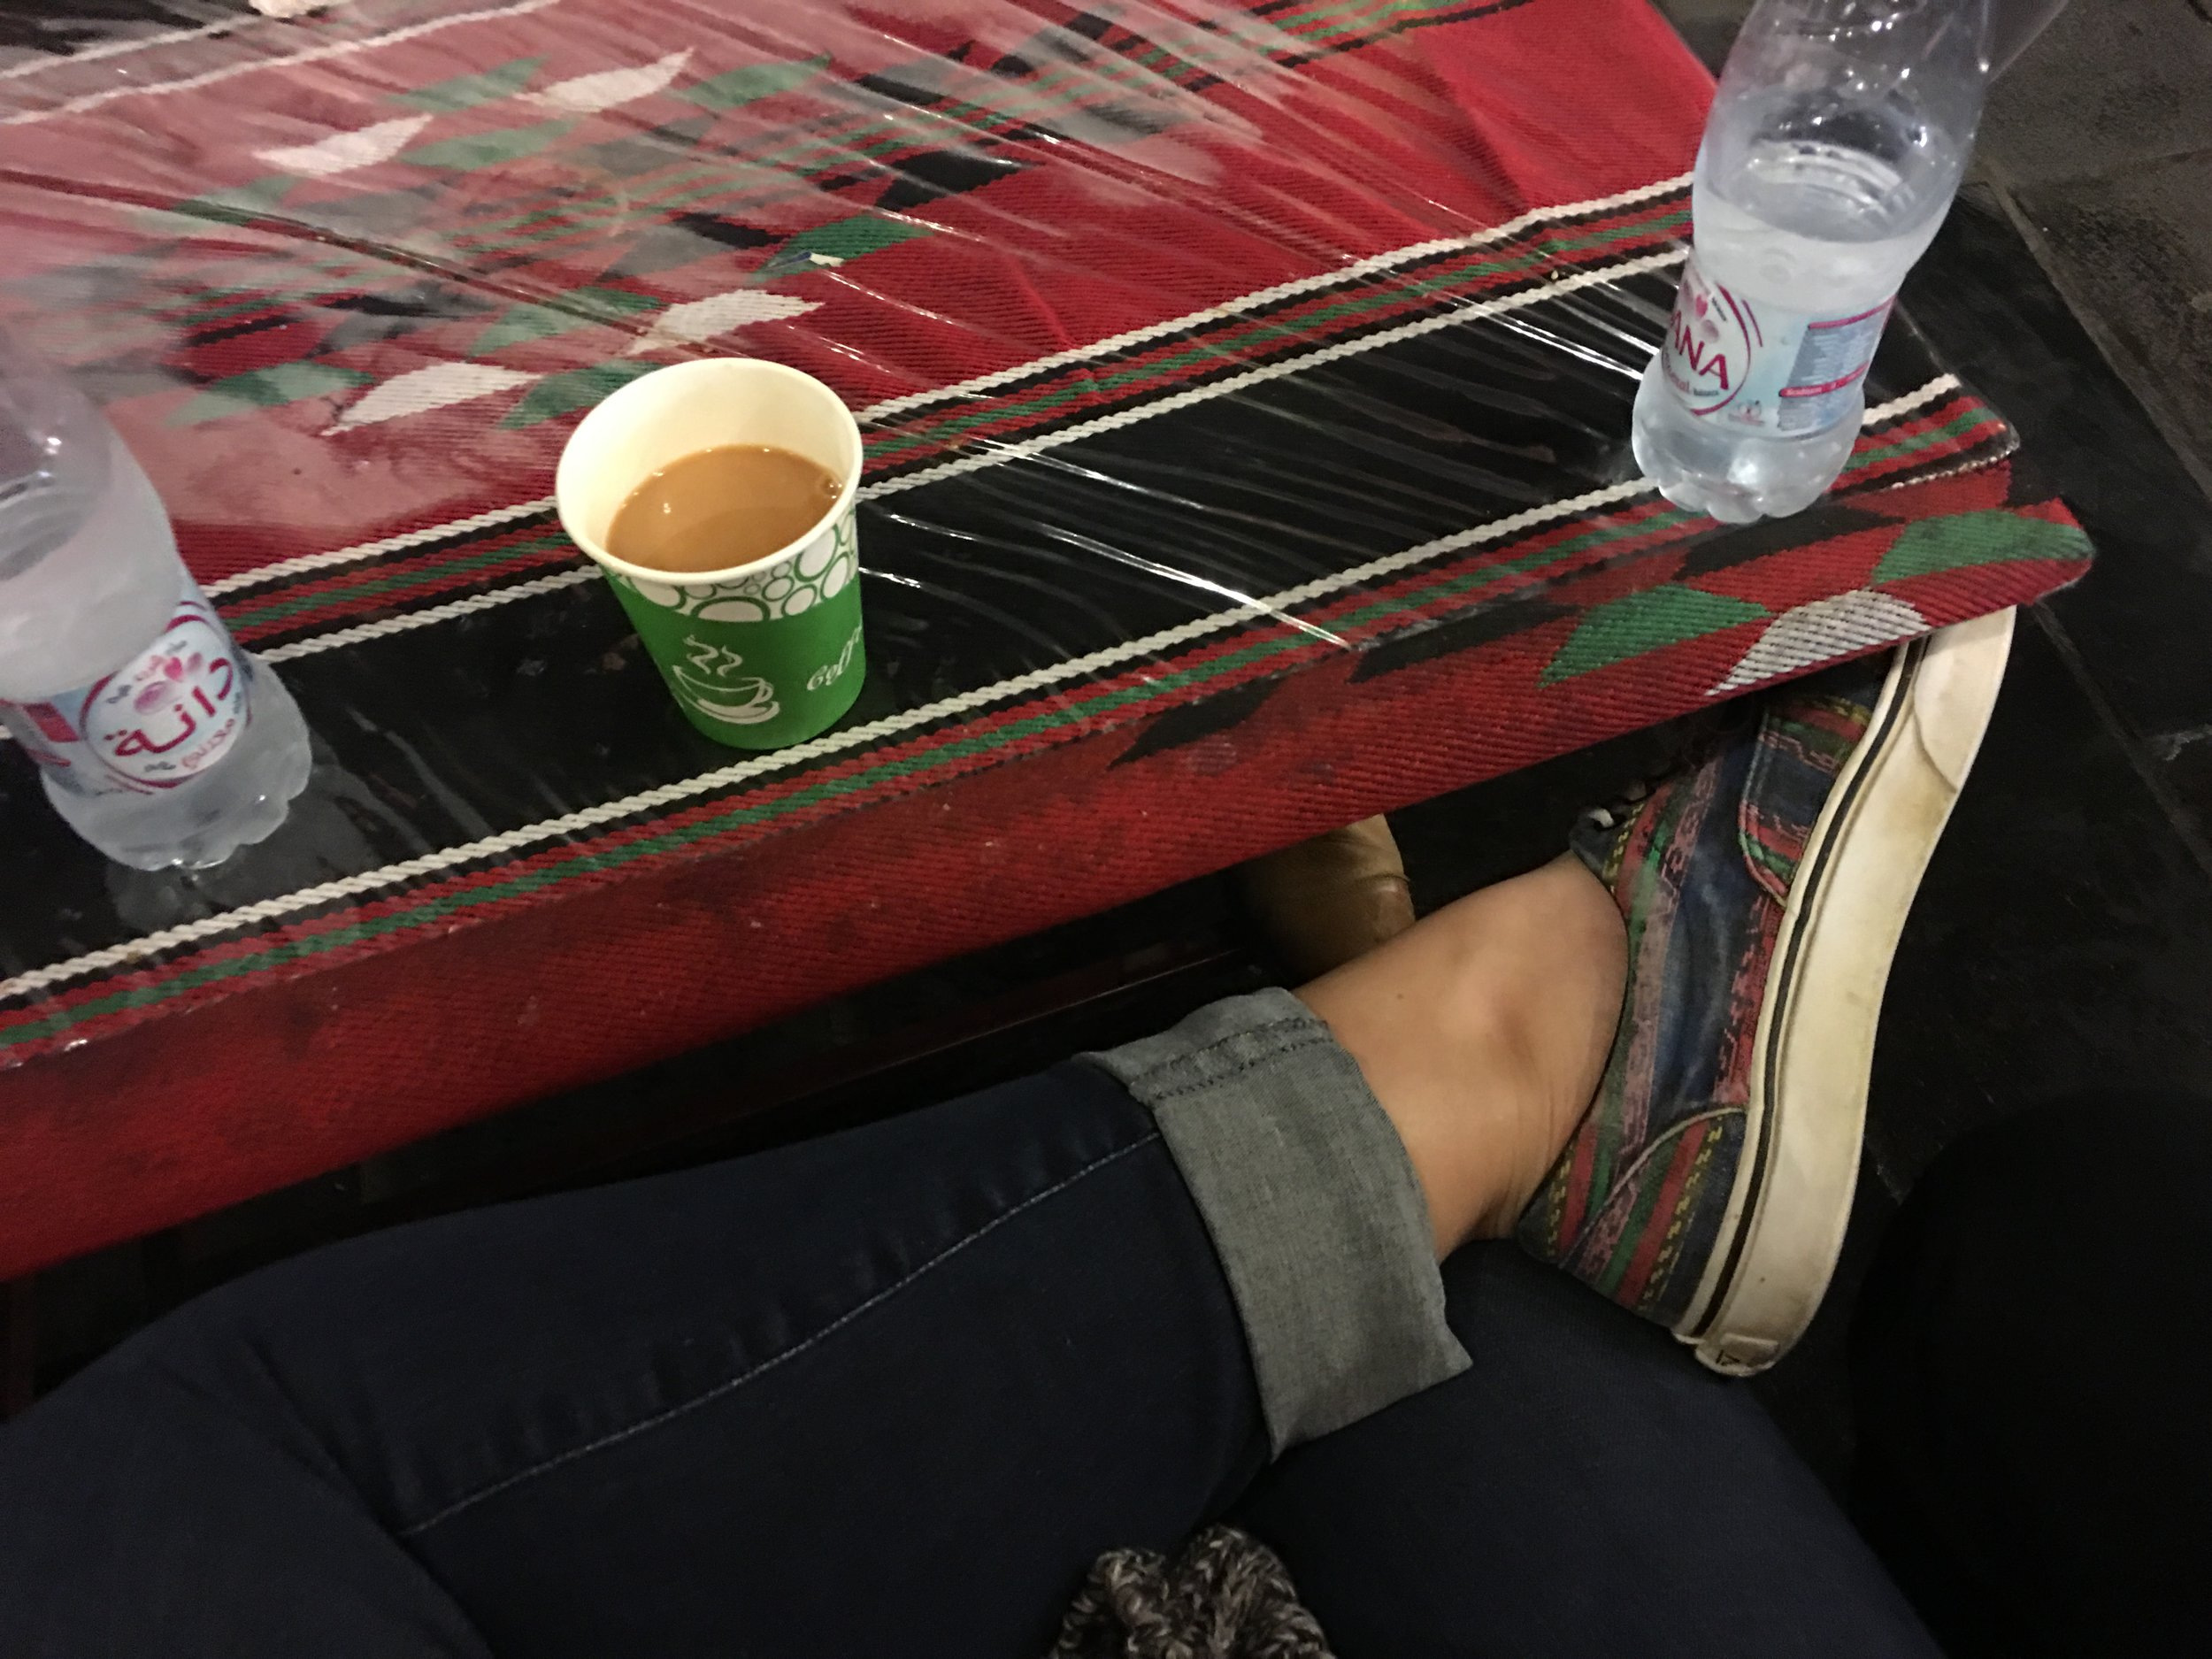 Once again, karak.